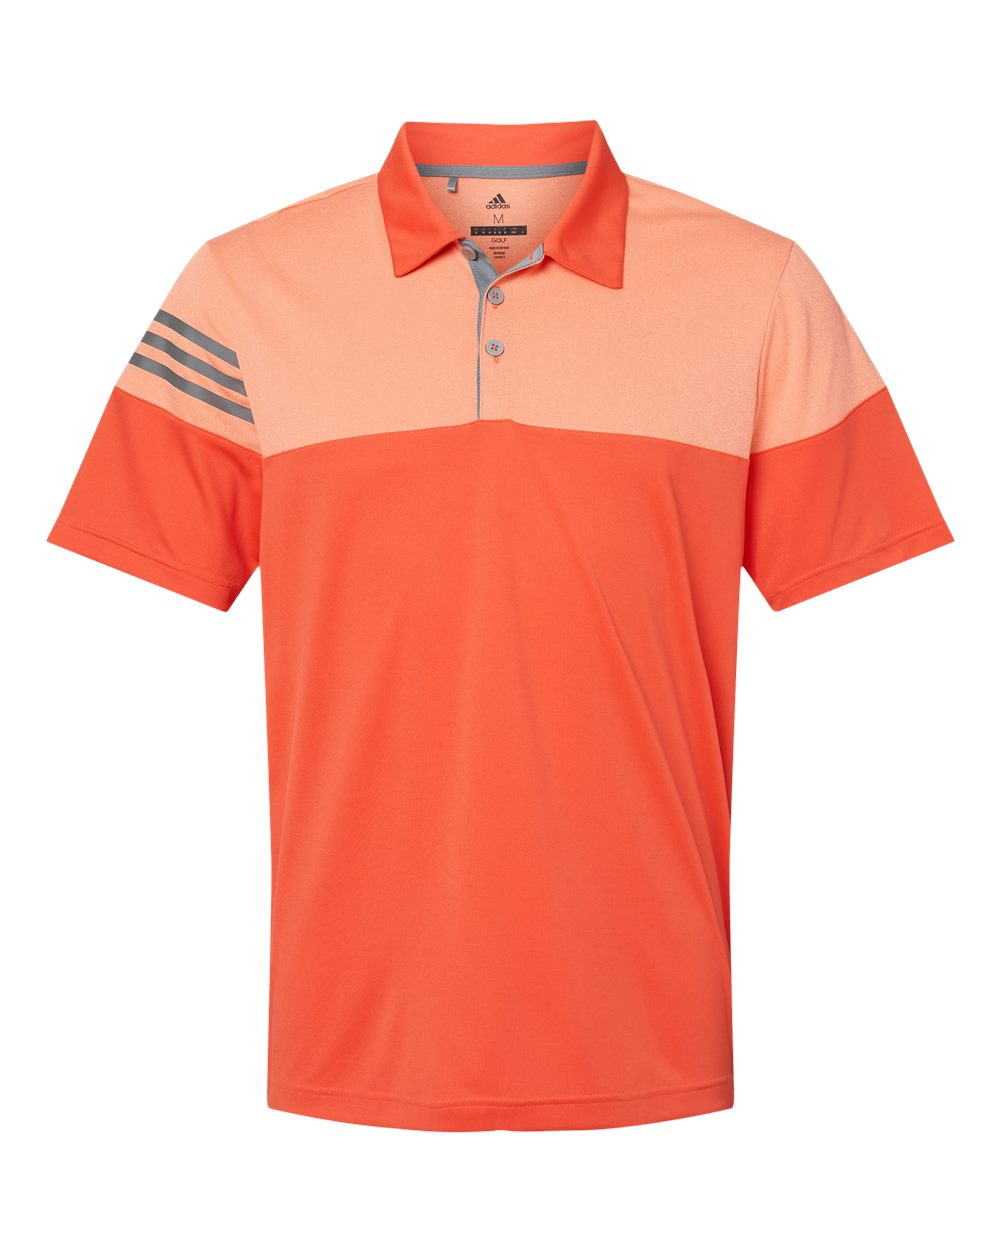 Adidas-Heather-3-Stripes-Block-Sport-Shirt-Polo-Button-A213-up-to-3XL thumbnail 9